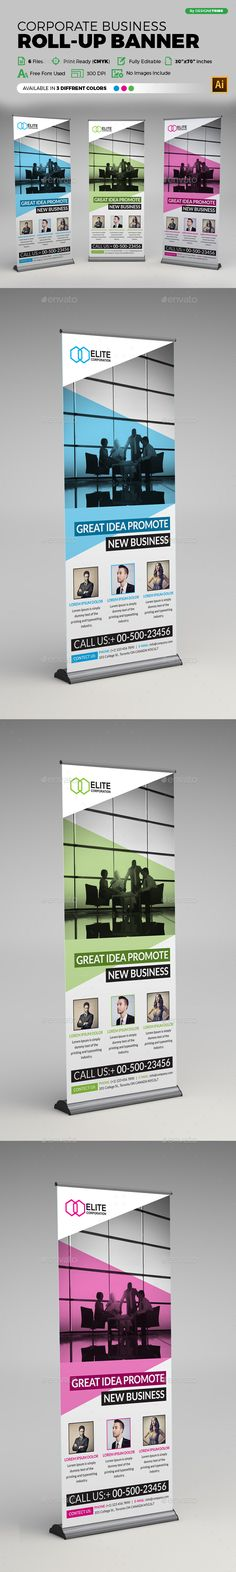 Corporate Business Roll-up Banner Template Vector EPS, AI. Download here: http://graphicriver.net/item/corporate-business-rollup-banner/14672271?ref=ksioks